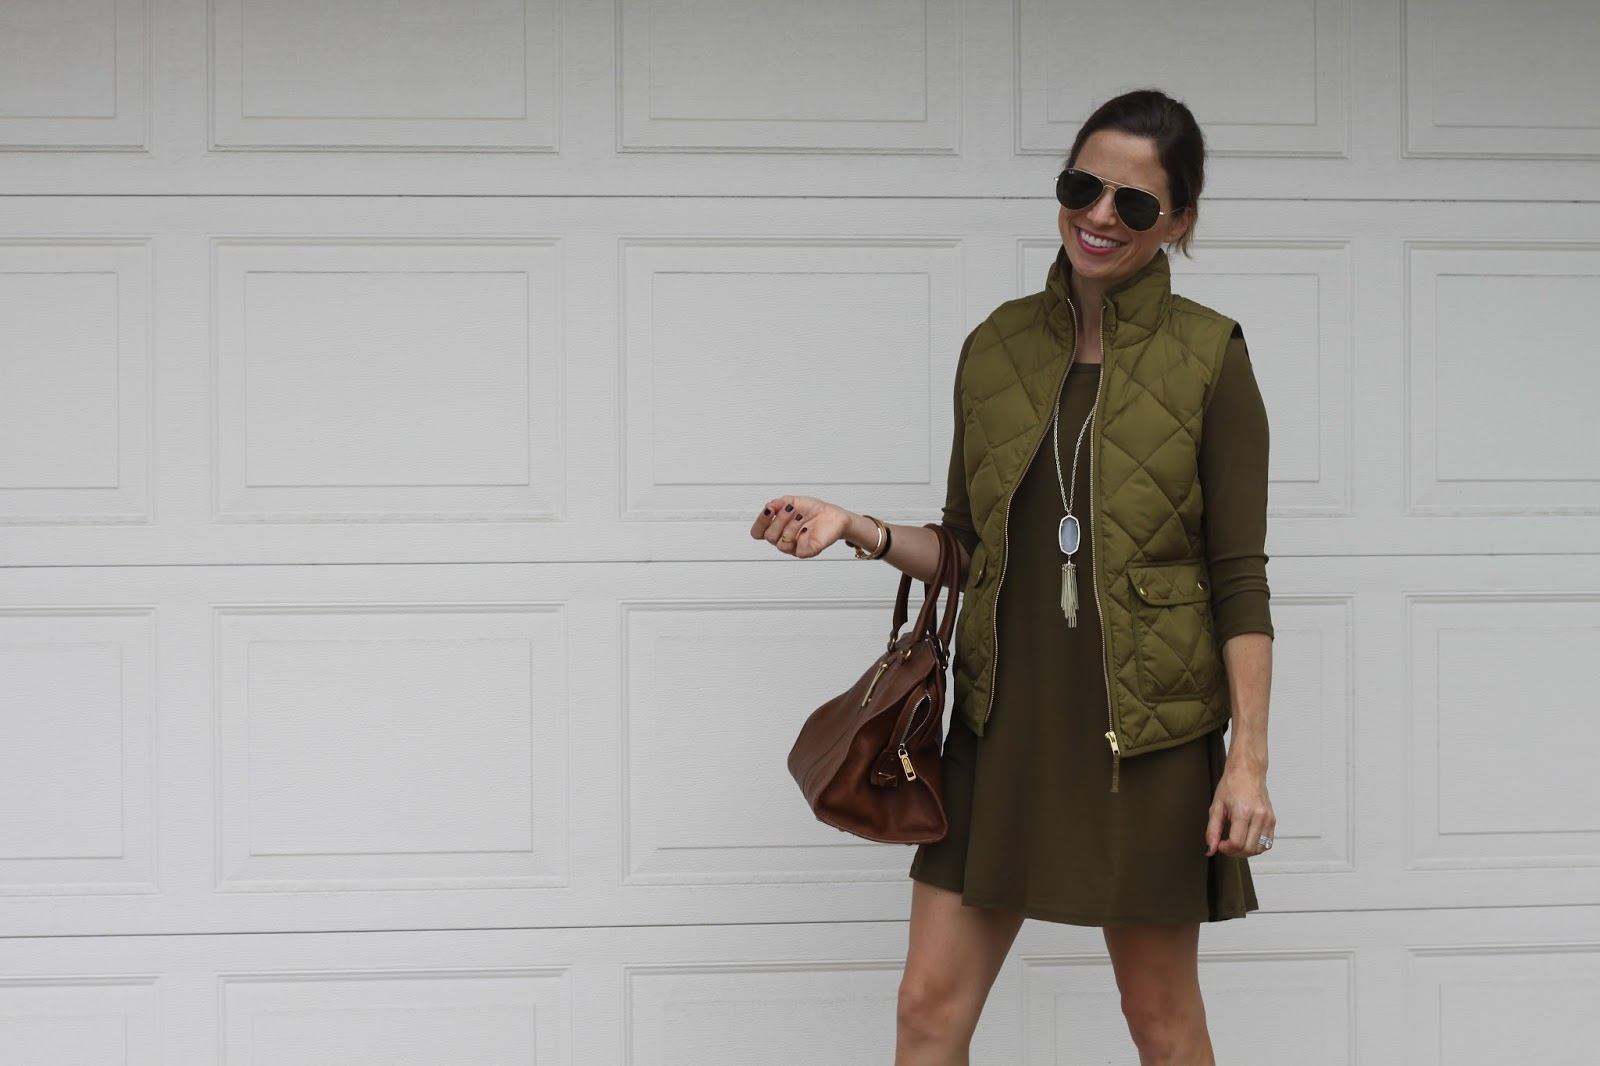 olive green dress and vest